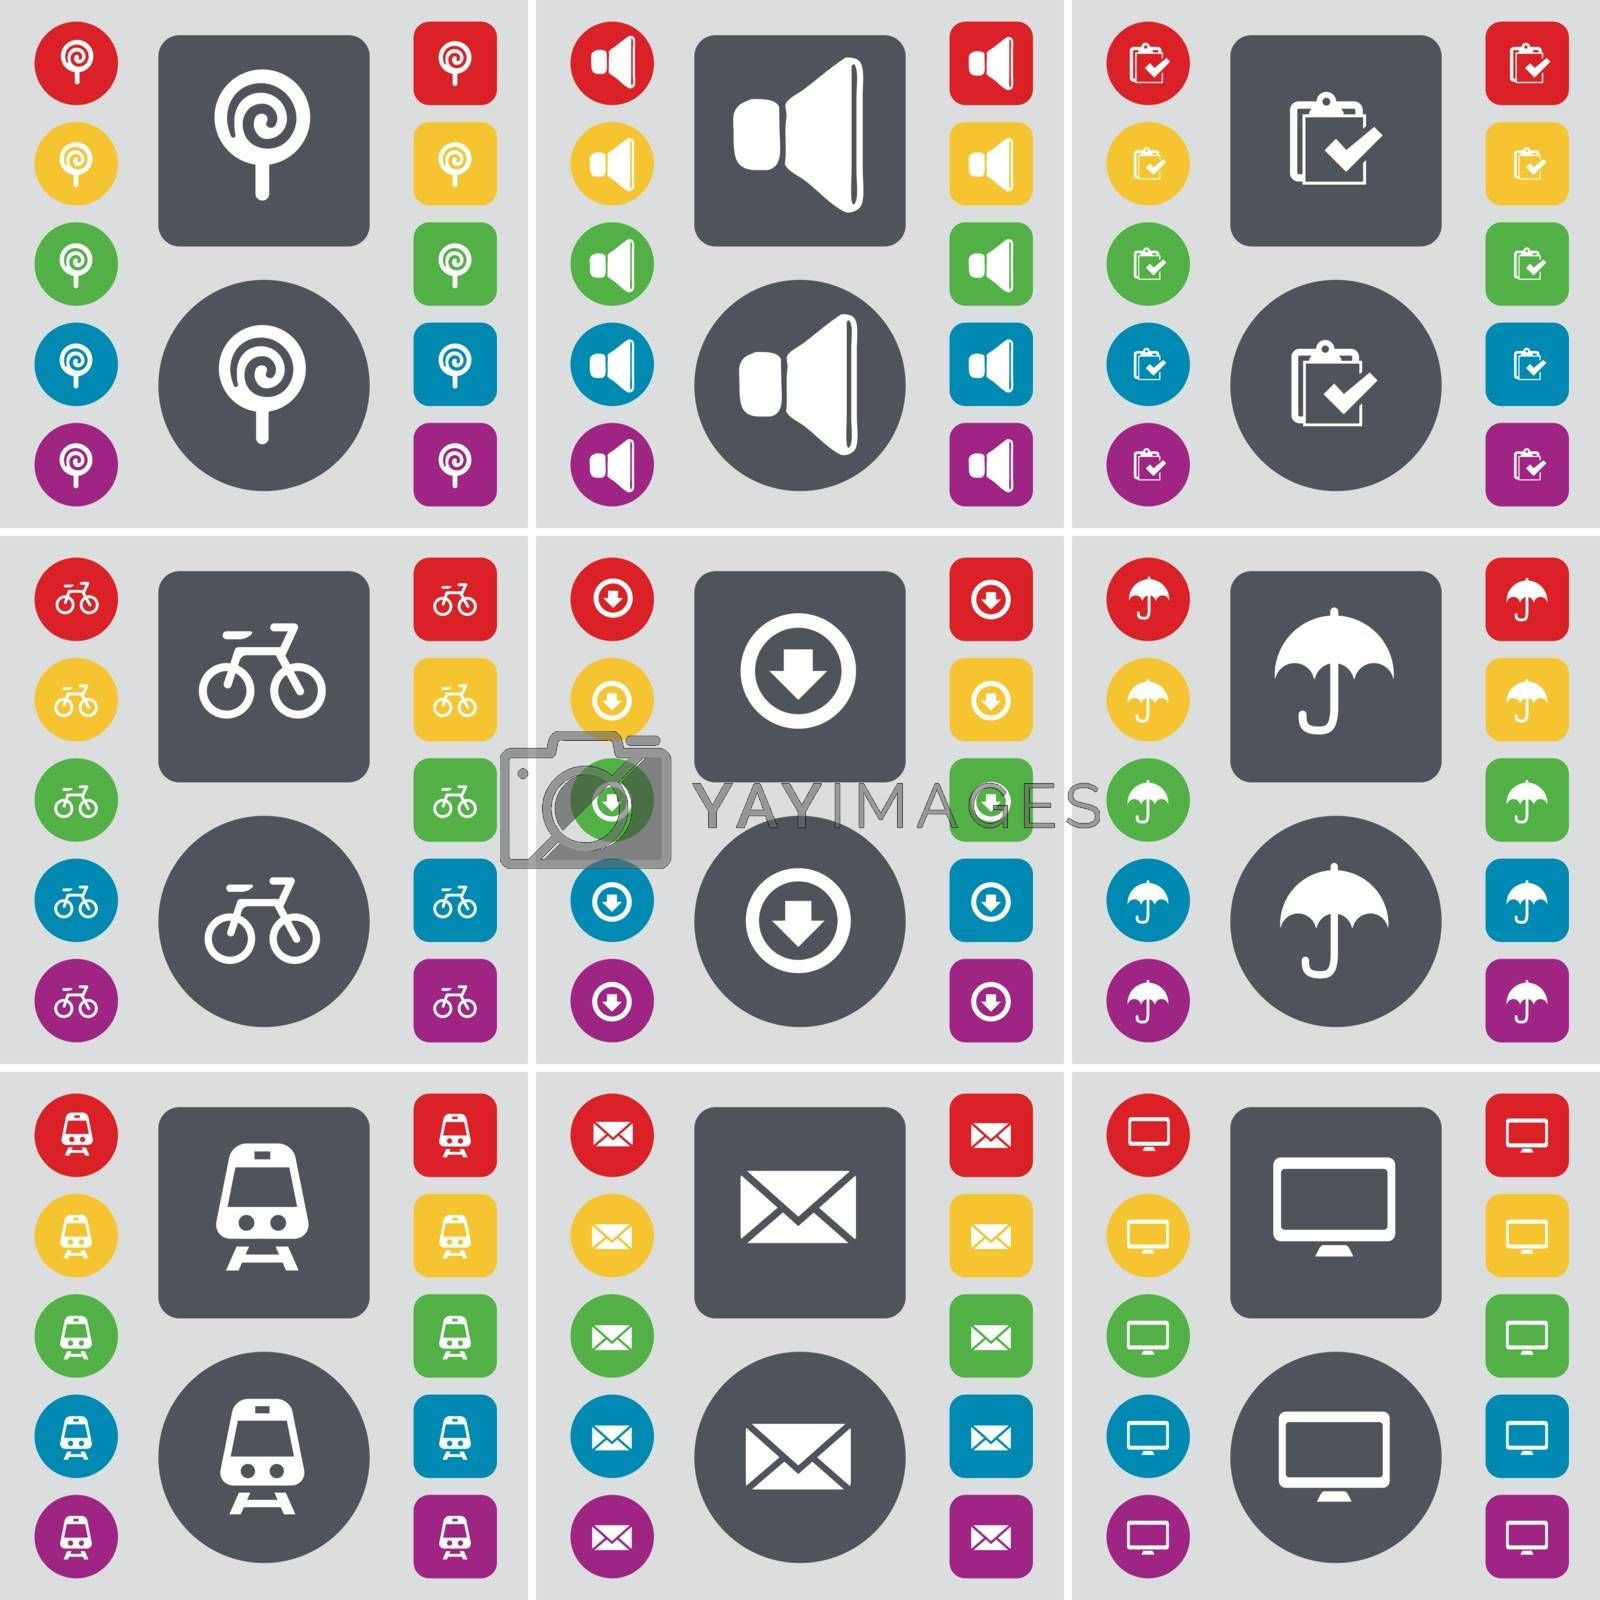 Royalty free image of Lollipop, Sound, Survey, Bicycle, Arrow down, Umbrella, Train, Message, Monitor icon symbol. A large set of flat, colored buttons for your design. Vector by serhii_lohvyniuk